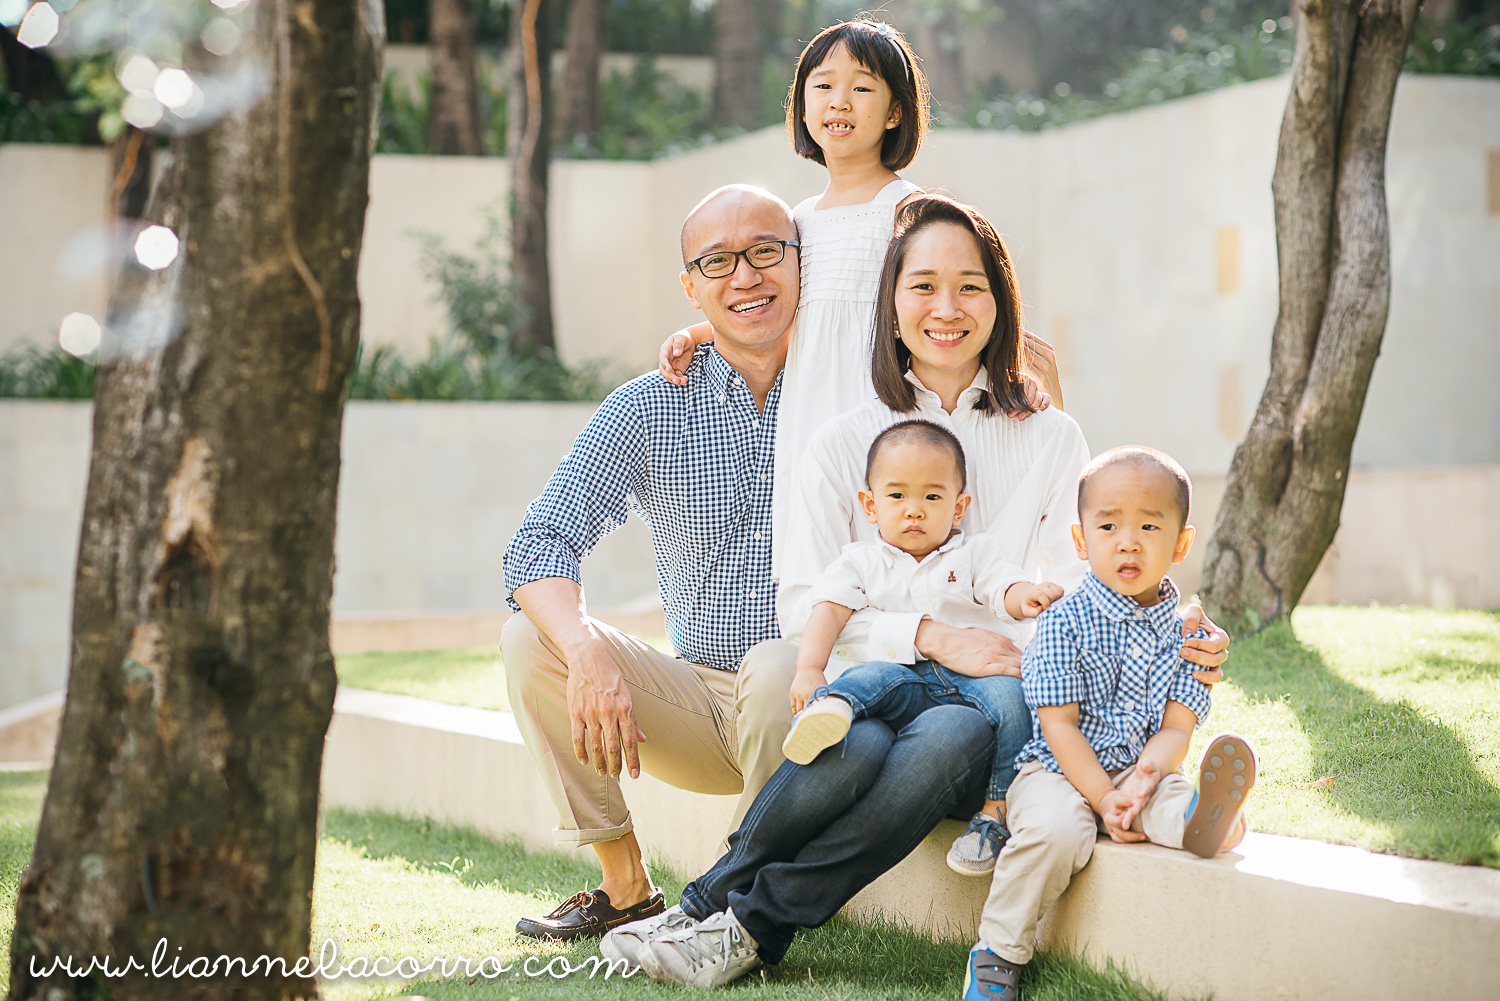 Dychiao Family - Manila Fashion Observer - Christine Dychiao - Family Lifestyle Photography by Lianne Bacorro-14